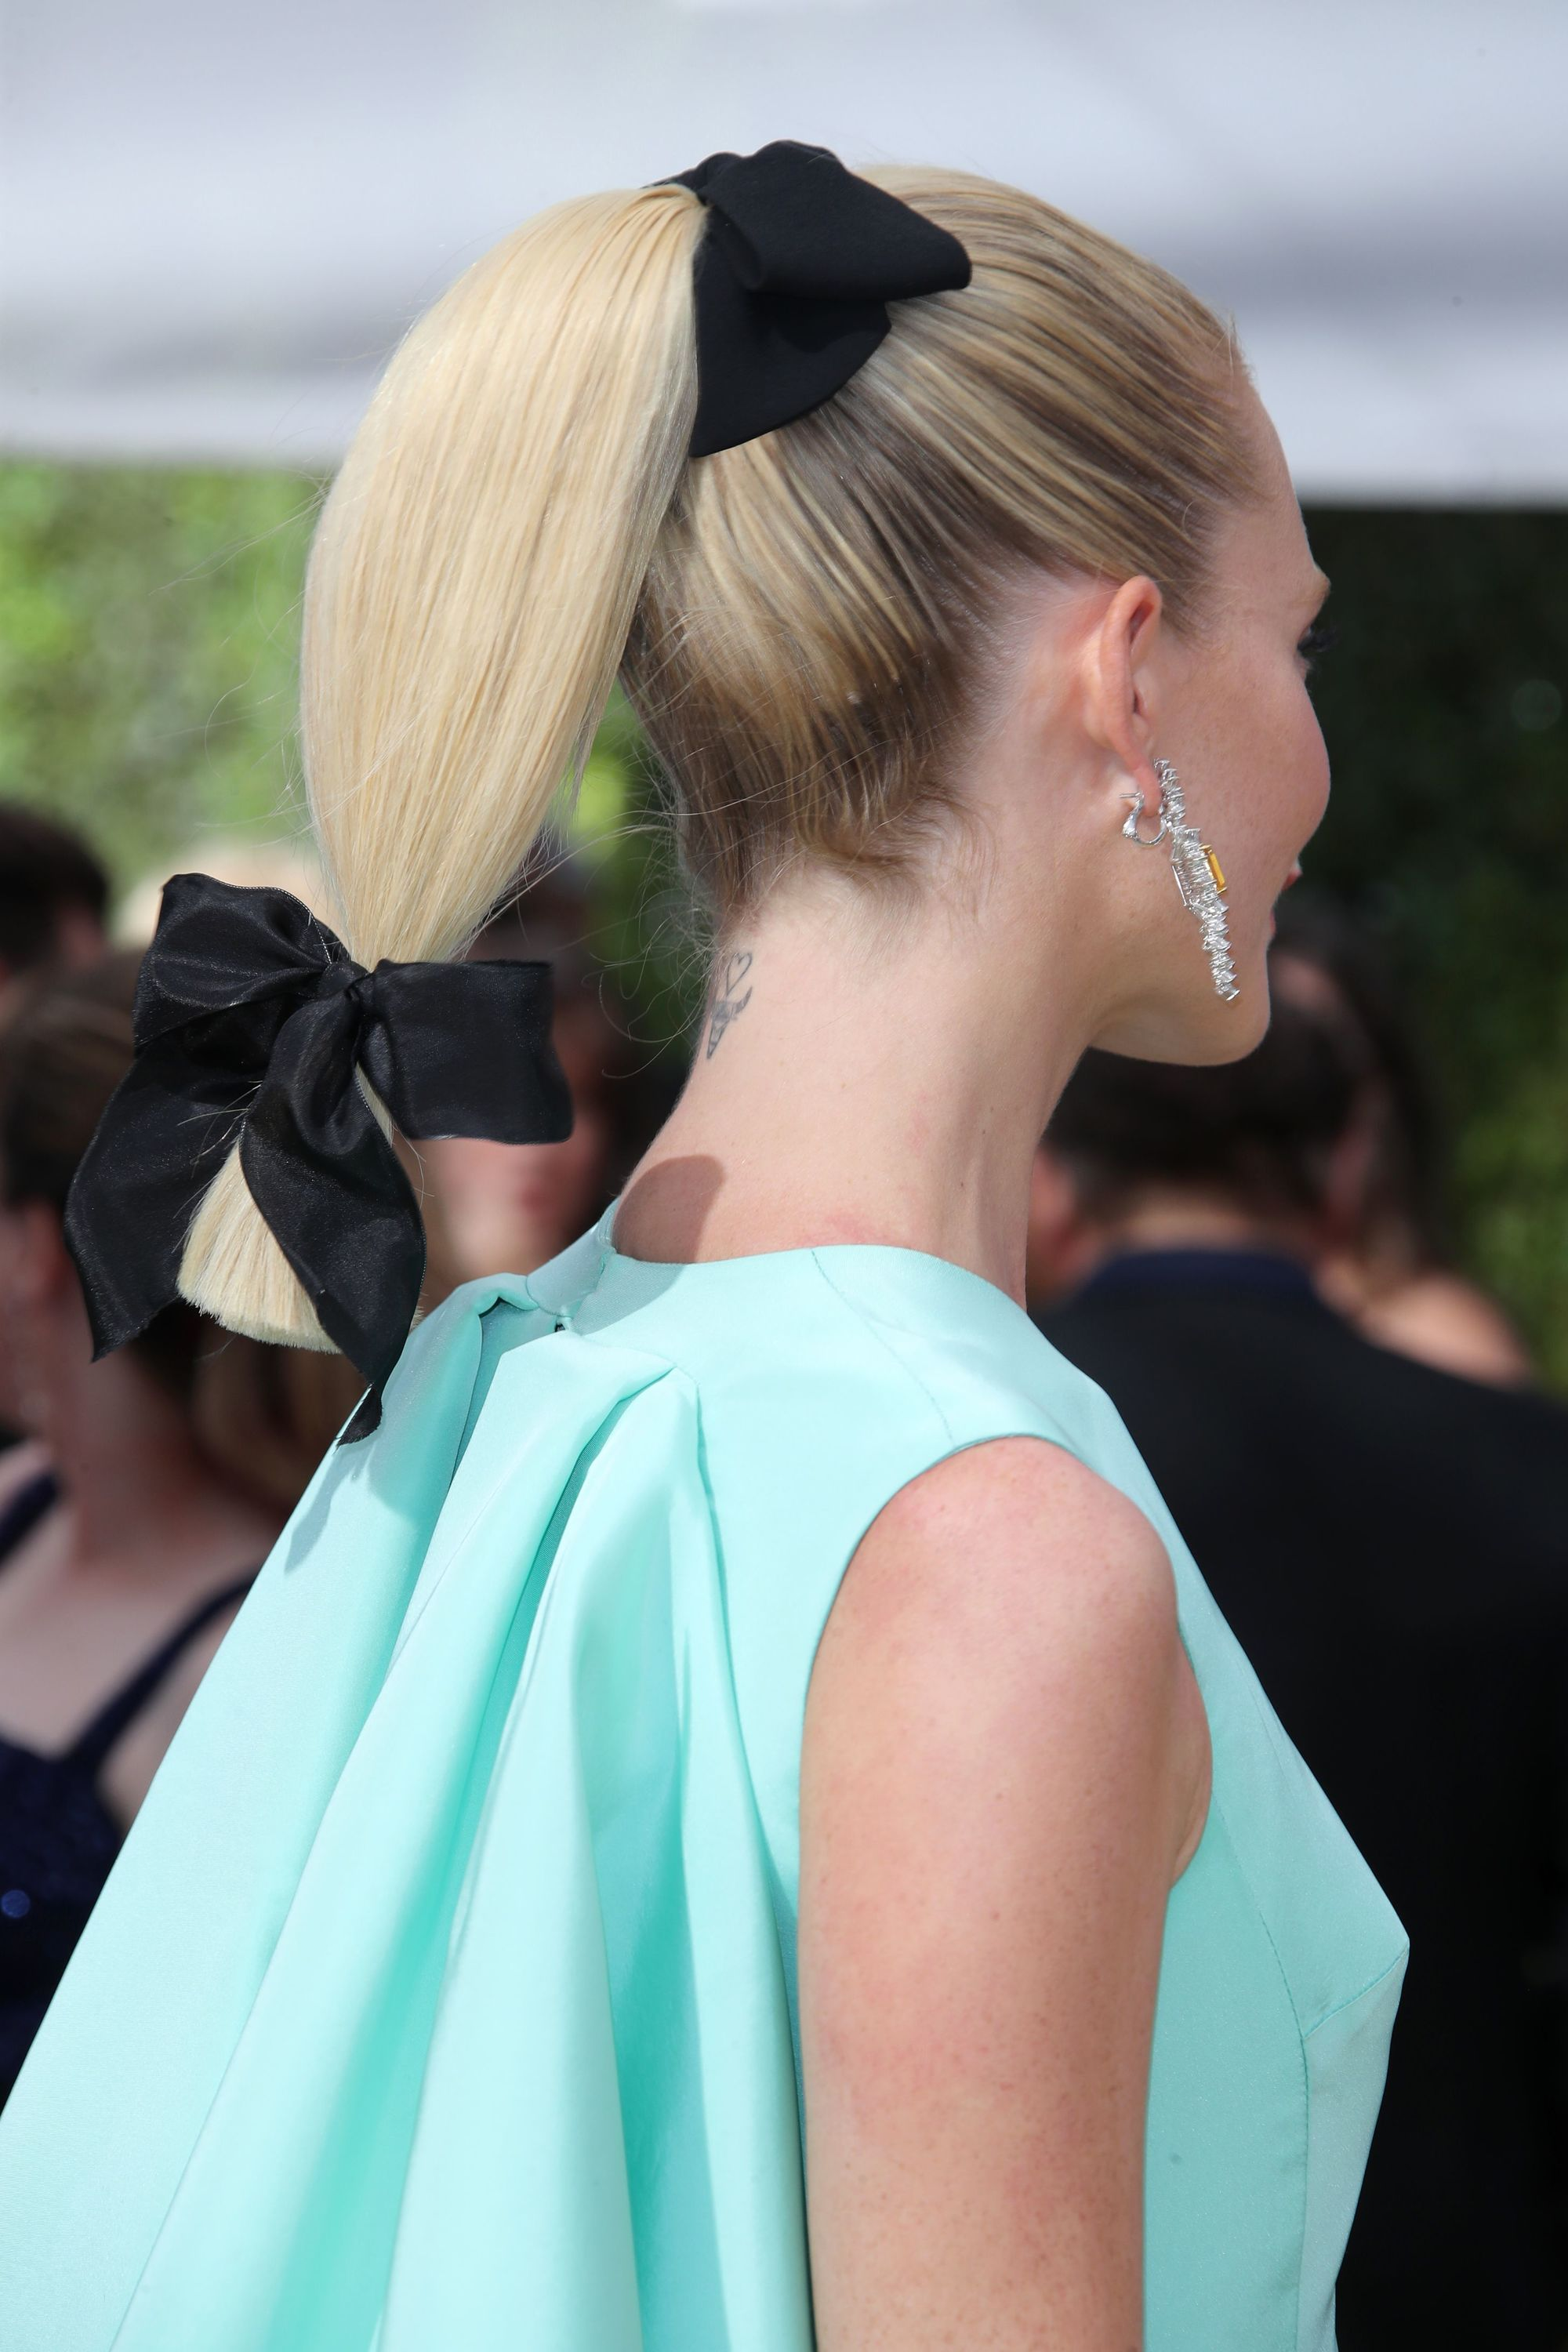 Emmy Awards 2018: Close up back shot of Poppy Delevingne with medium platinum blonde hair styled into a low ponytail with bow hair accessories, wearing a teal dress and drop earrings on the red carpet